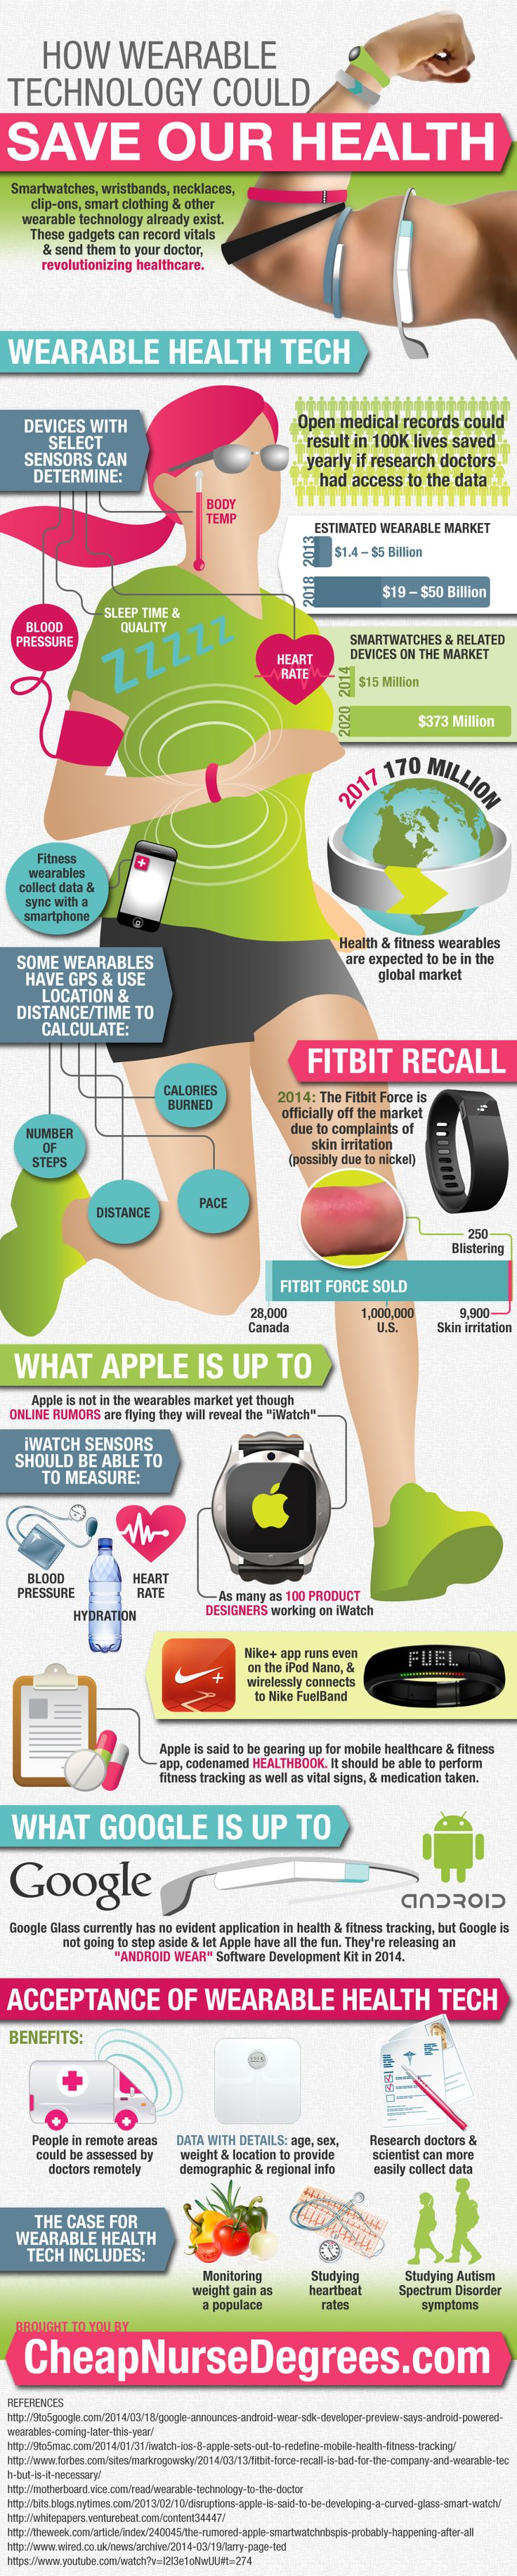 How Wearable Technology Could Save Our Health image wearable technology7